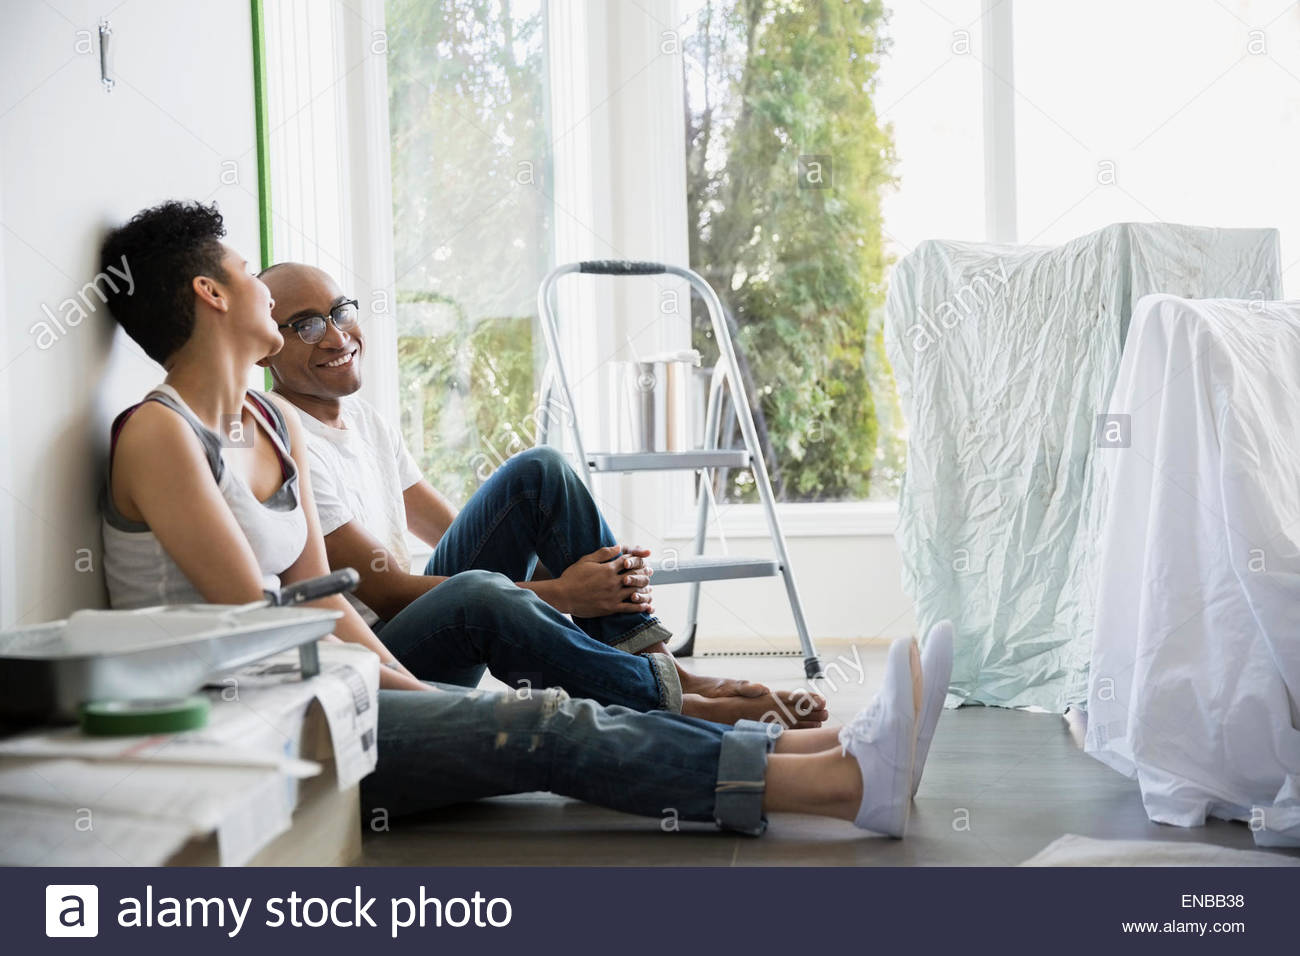 Couple taking a break from painting living room - Stock Image